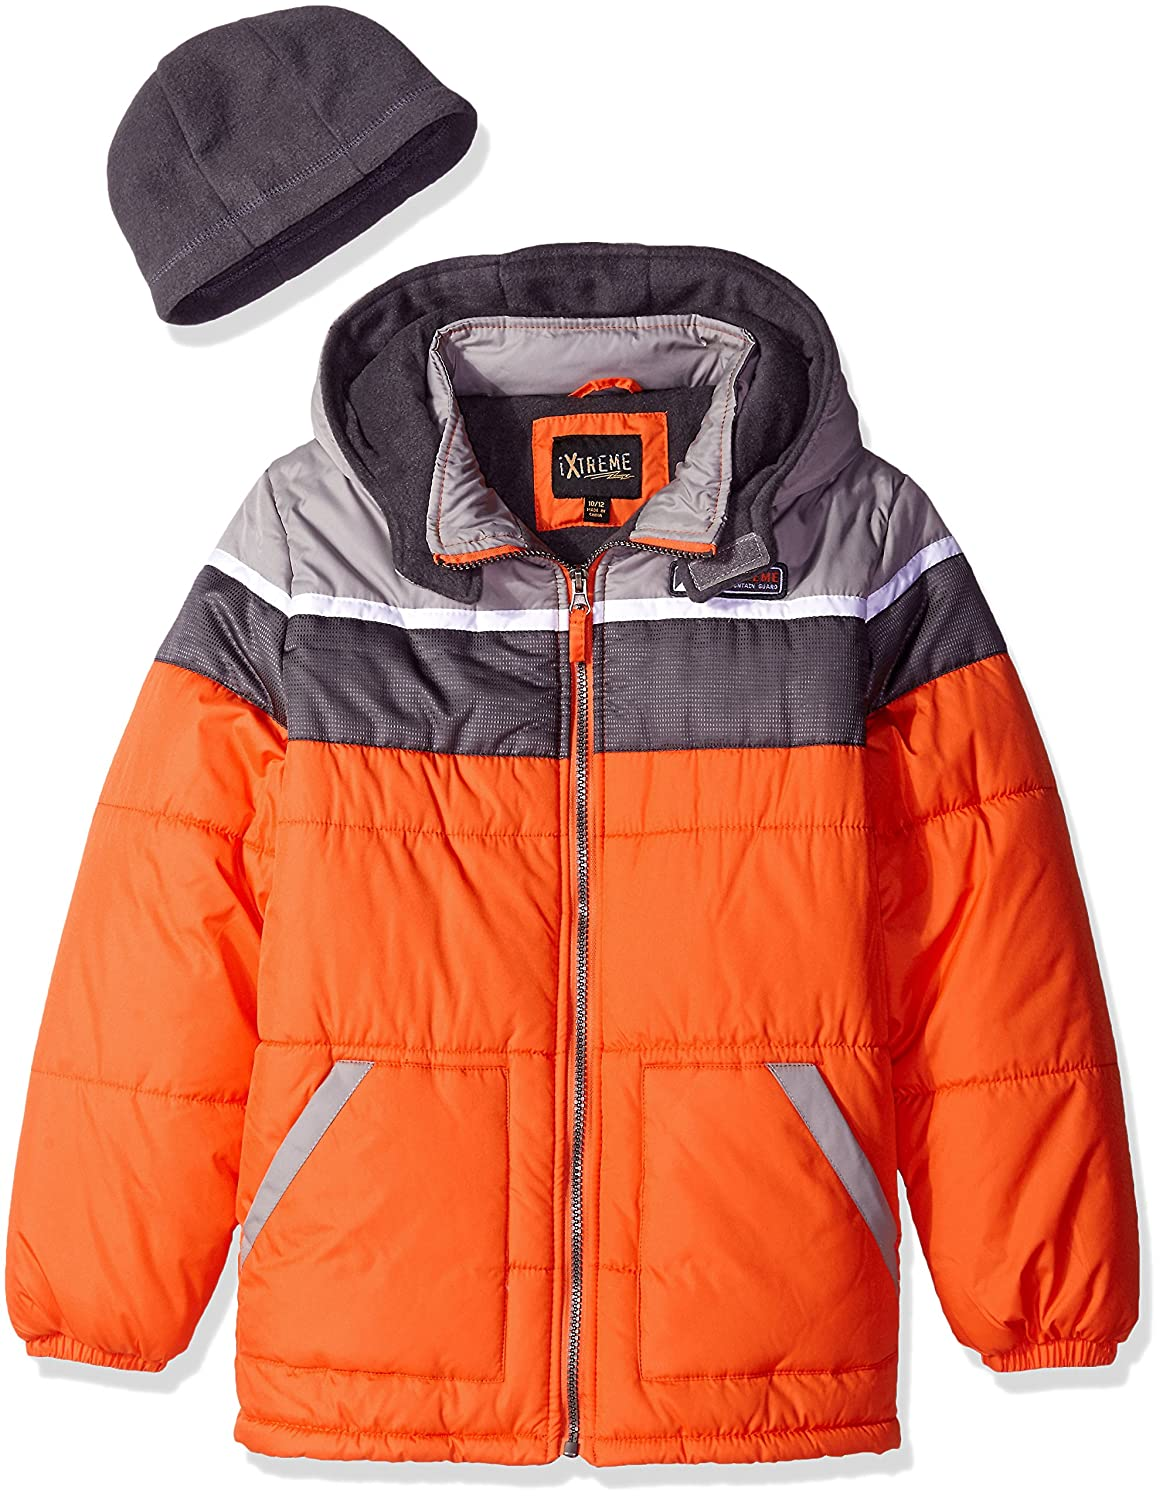 iXtreme OUTERWEAR ボーイズ